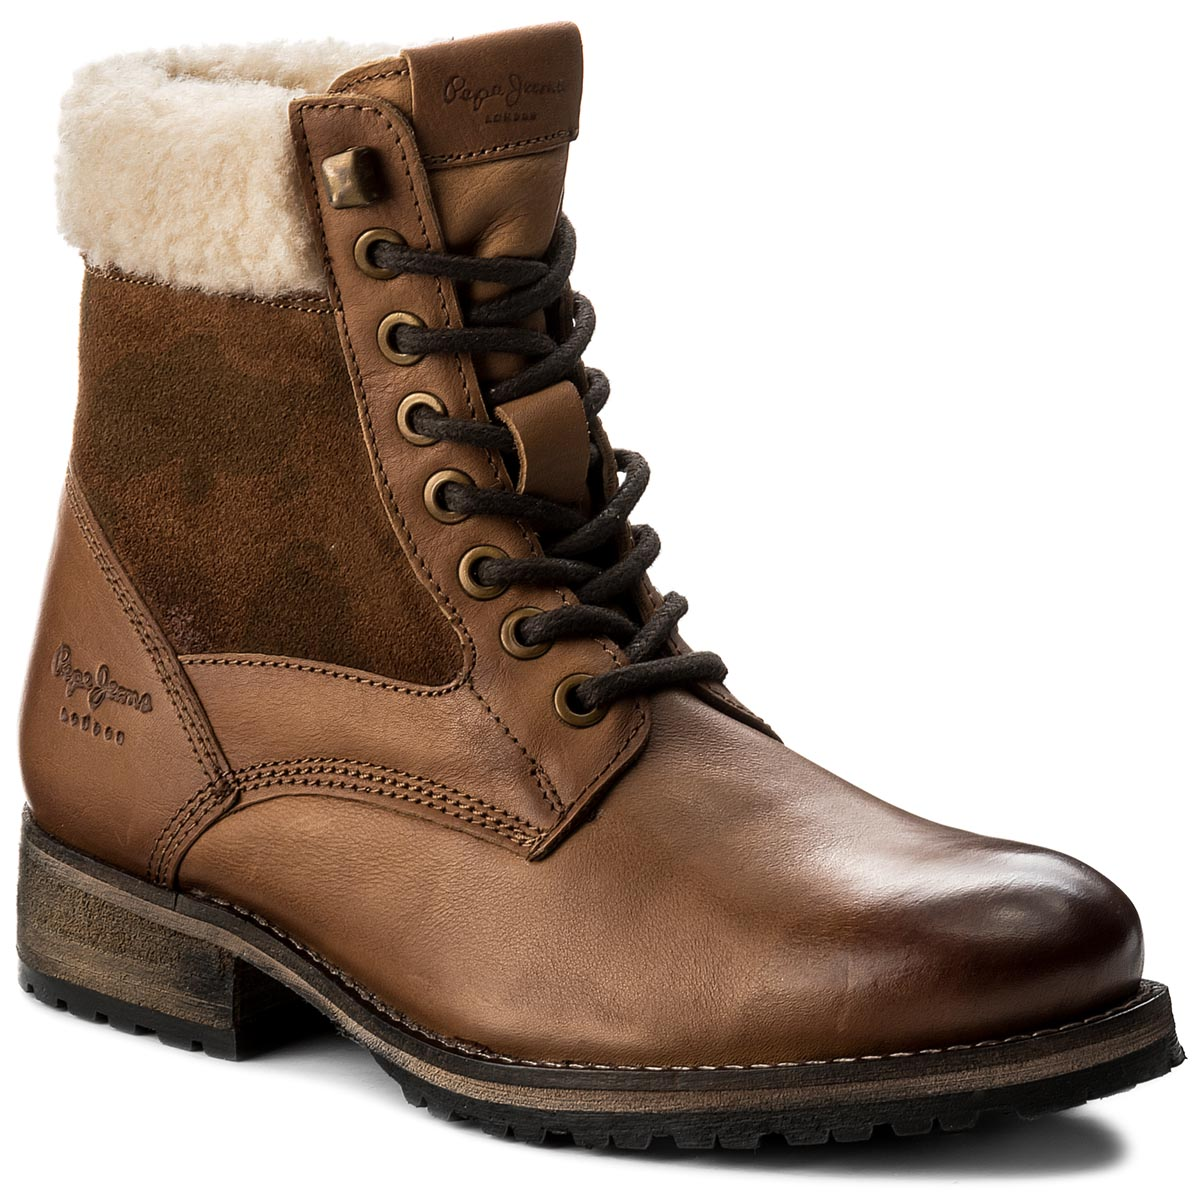 Trapery PEPE JEANS - Melting Camu PLS50291 Nut Brown 877